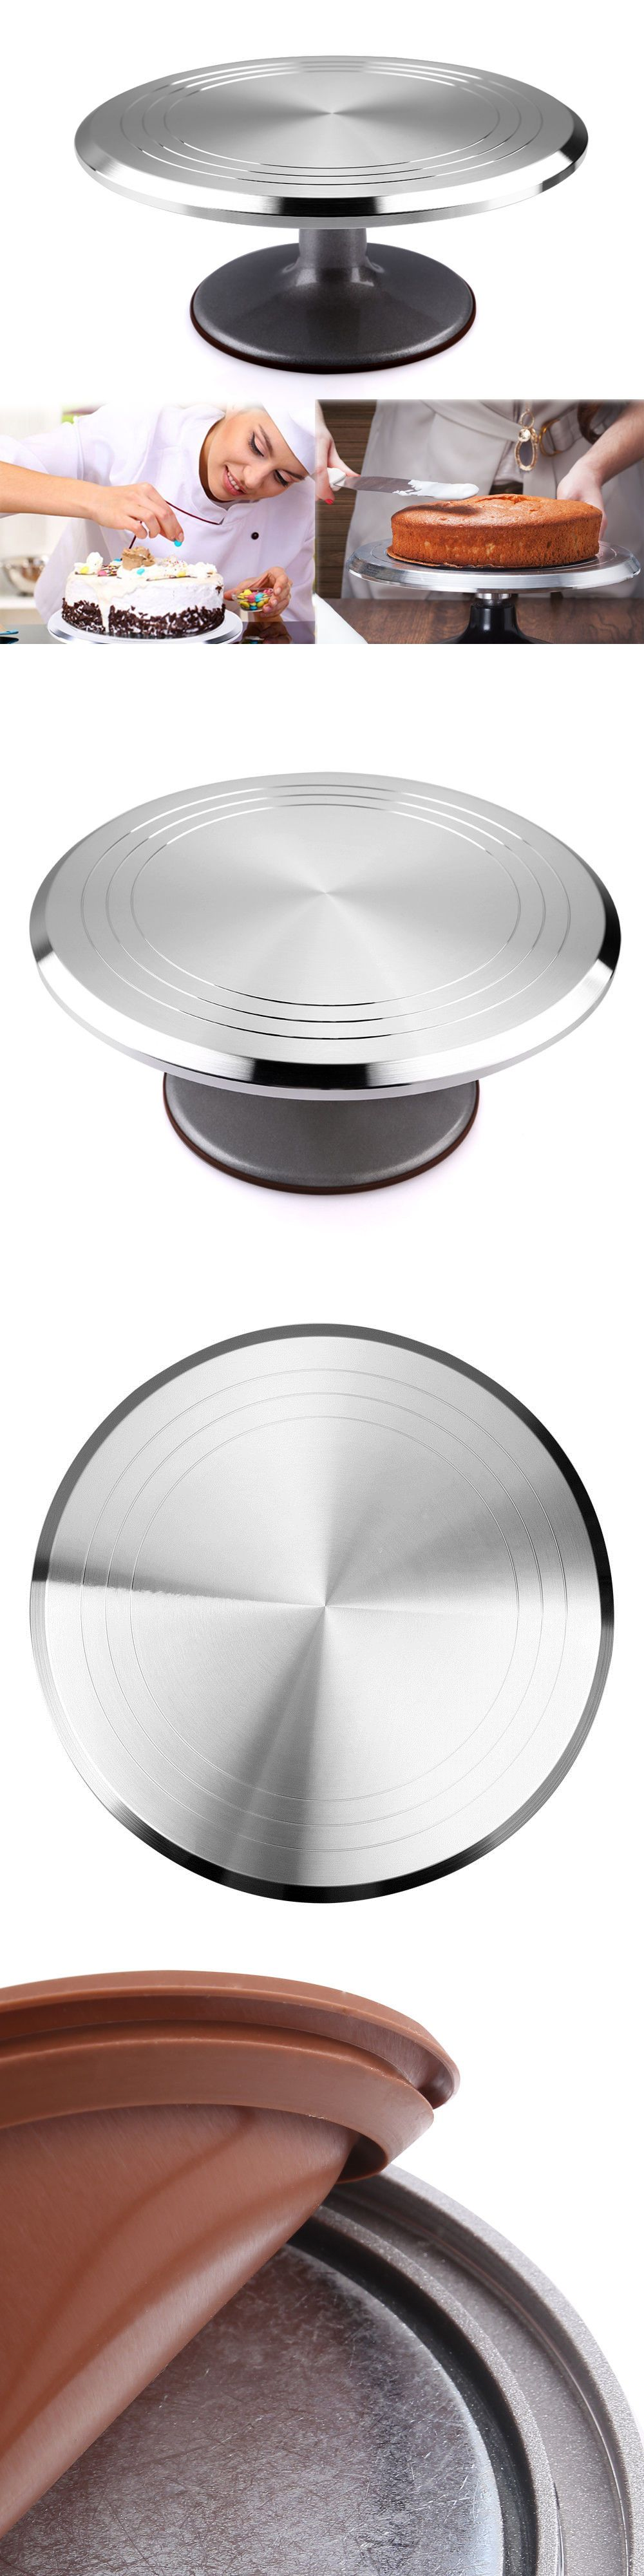 Cake stands 177010 12 revolving rotating cake turntable